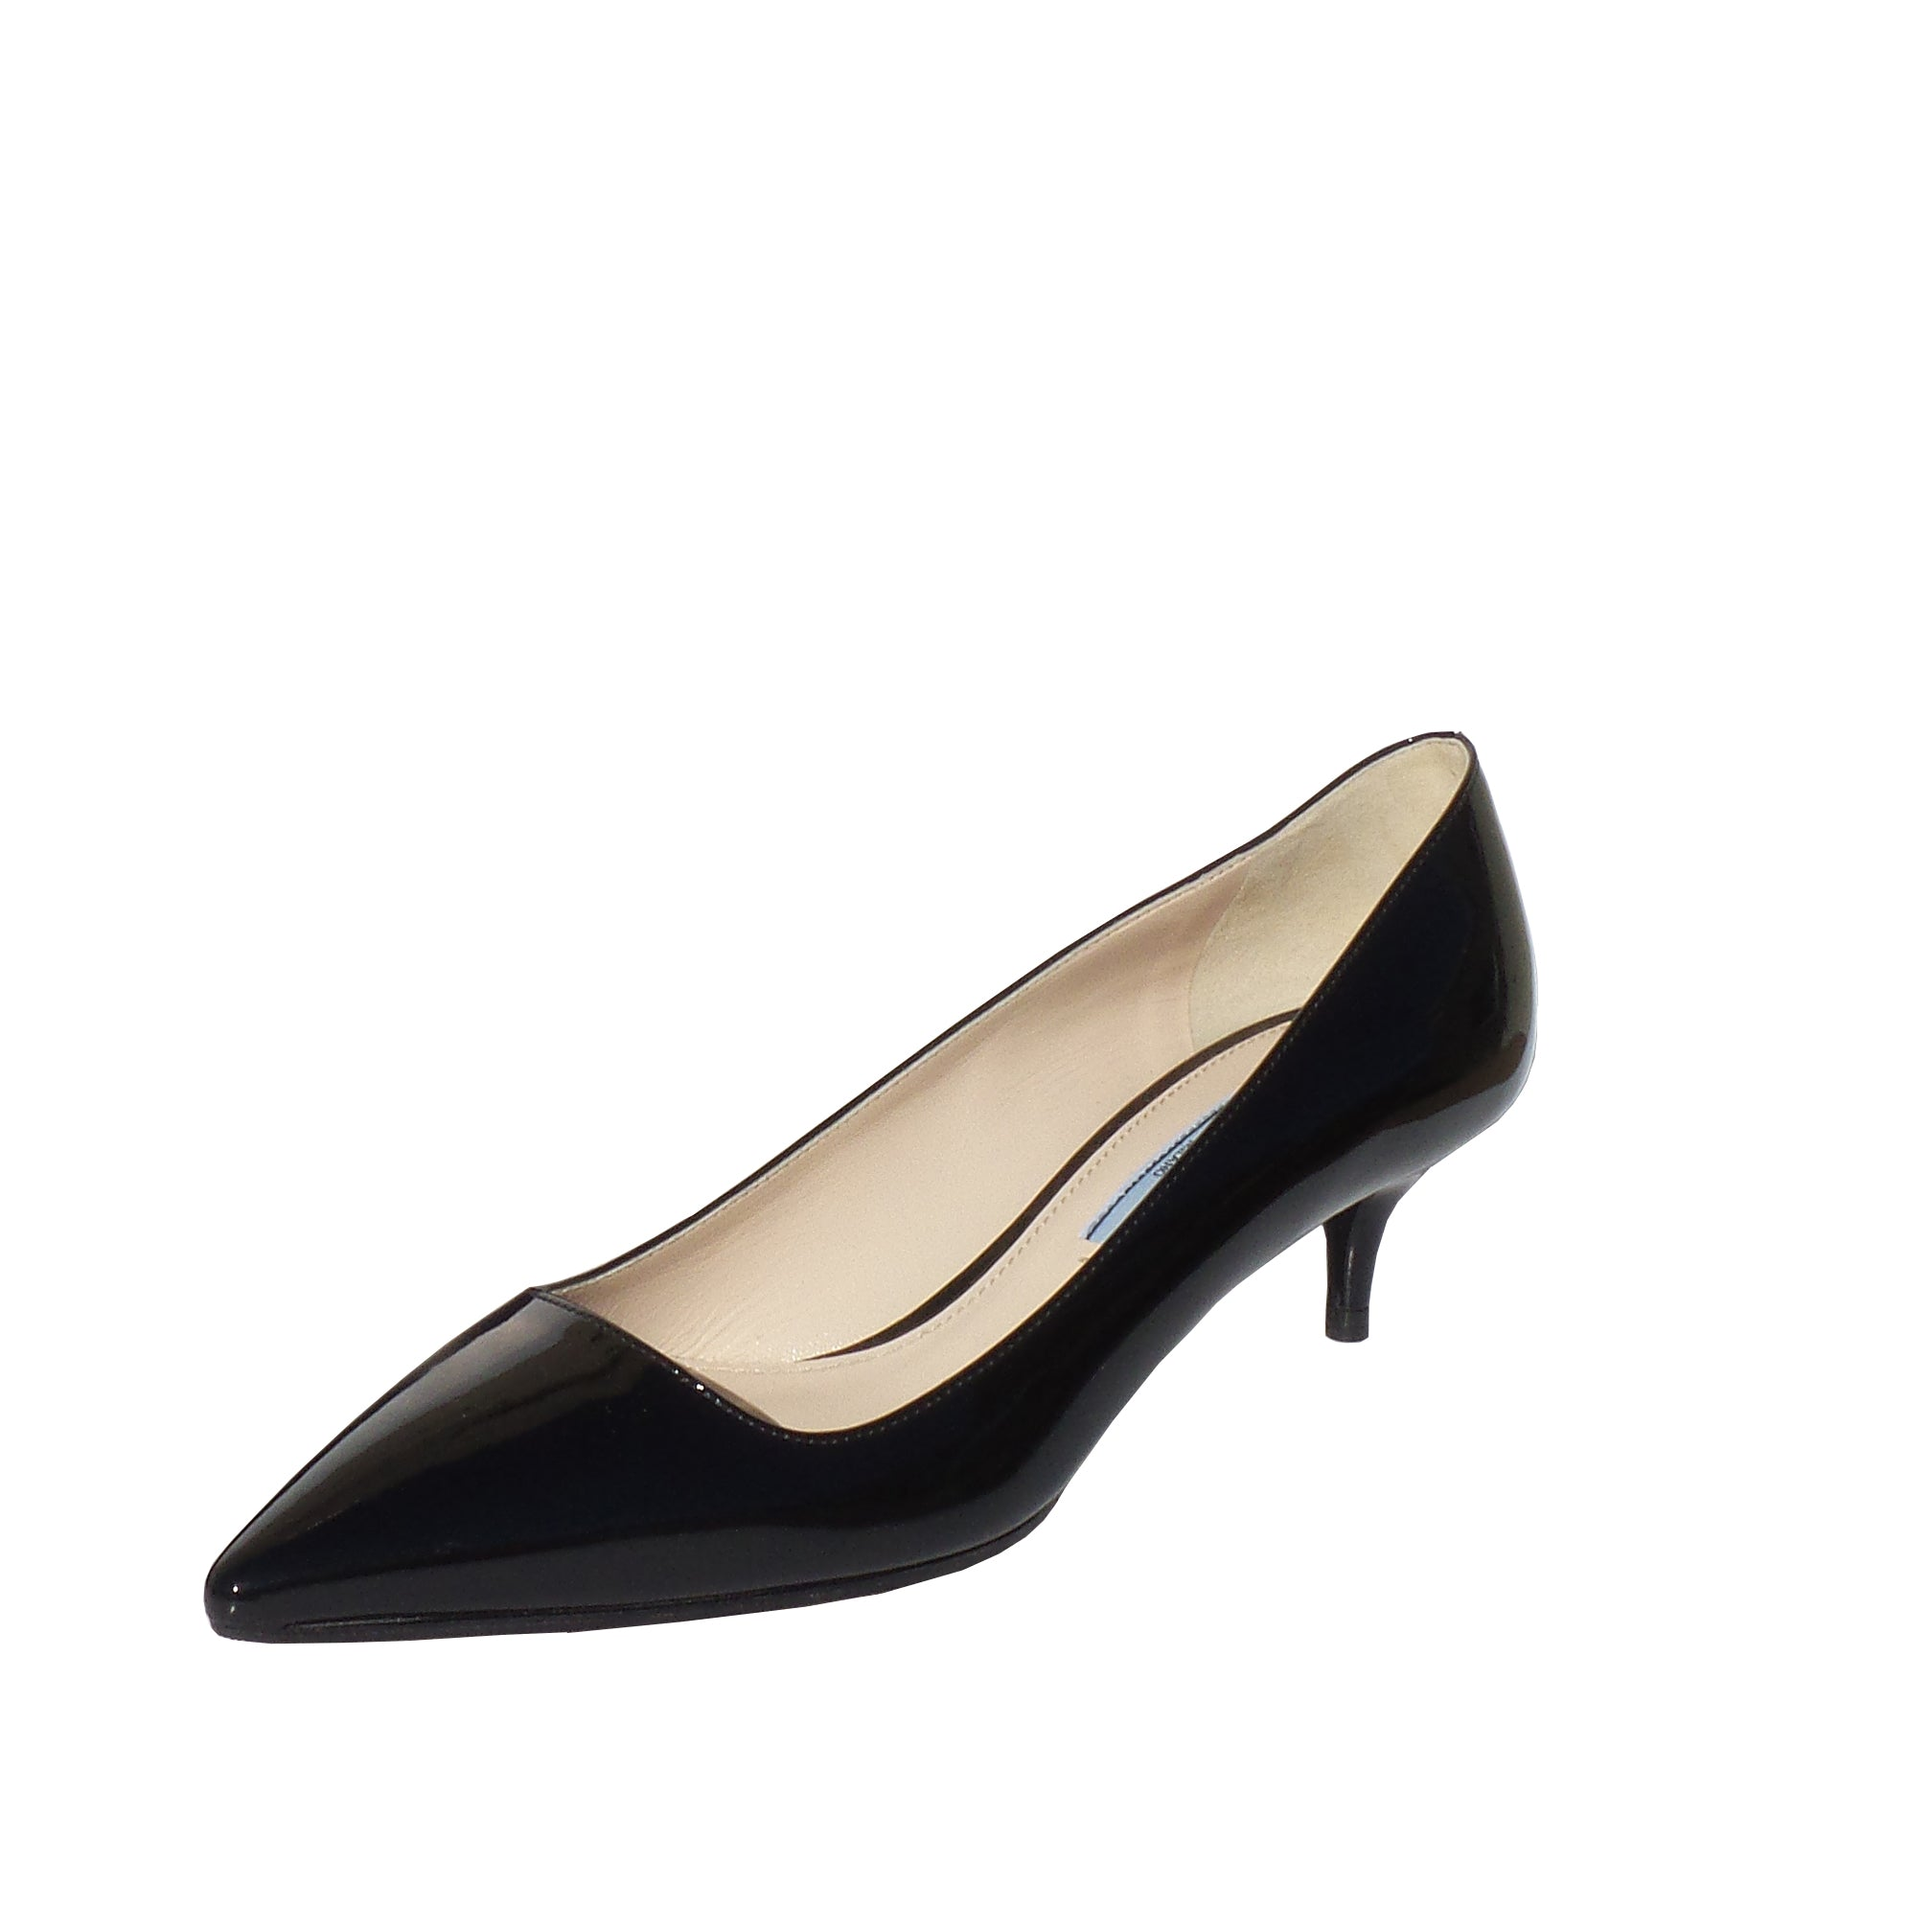 c1d6126cdf PRADA Black Patent Leather Pointed Toe Mid Kitten Heel Classic Pumps 3 –  Encore Resale.com